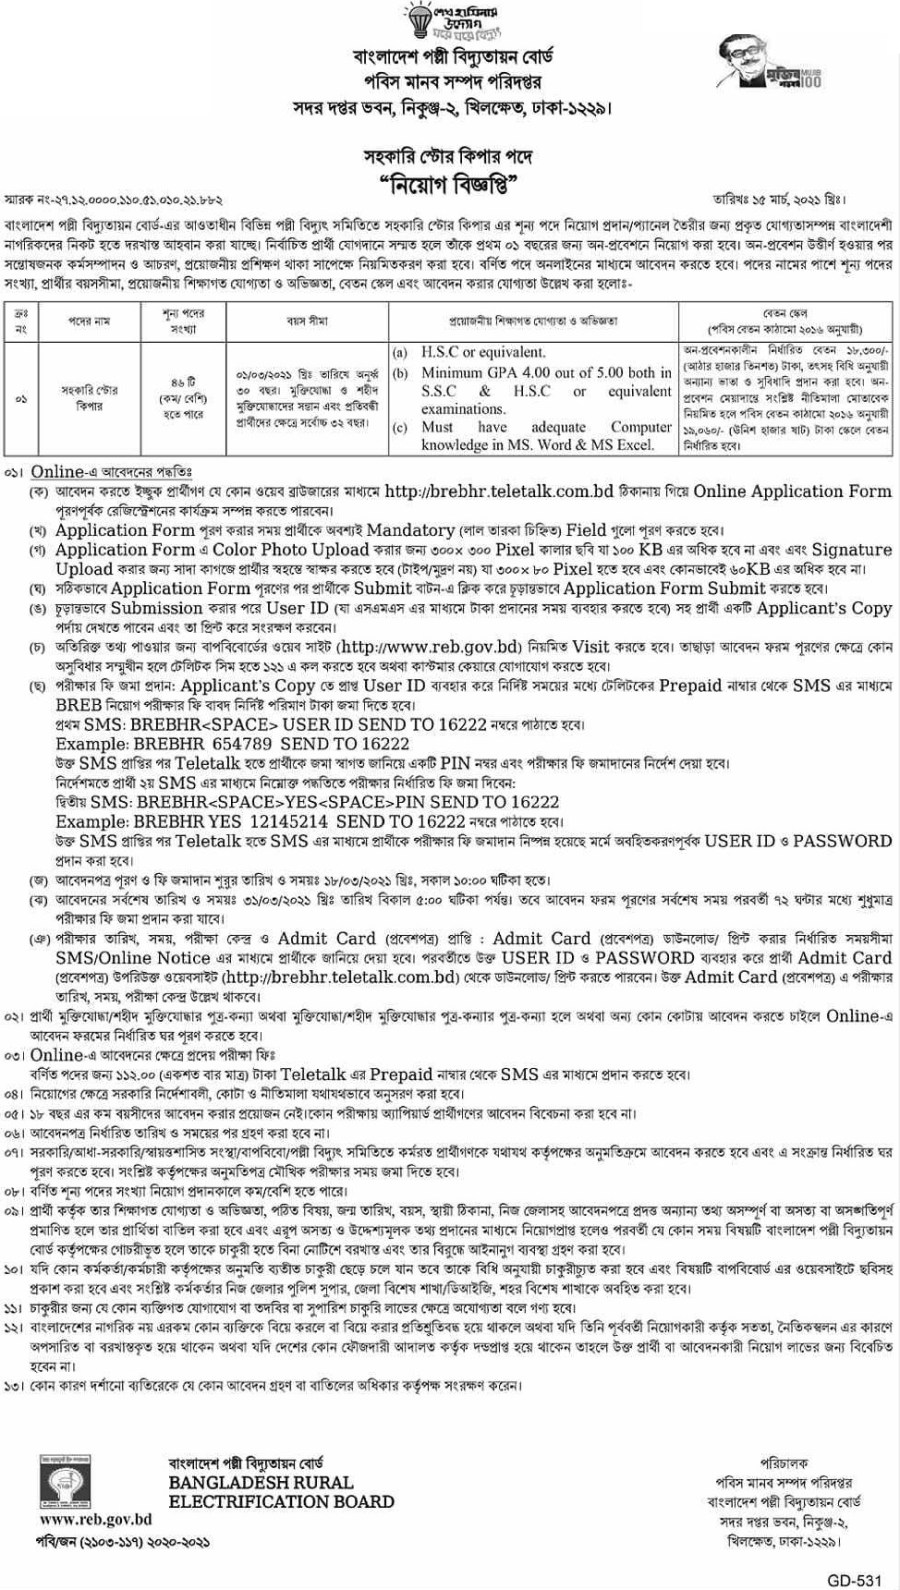 Bangladesh Rural Electrification Board Job Circular March 2021